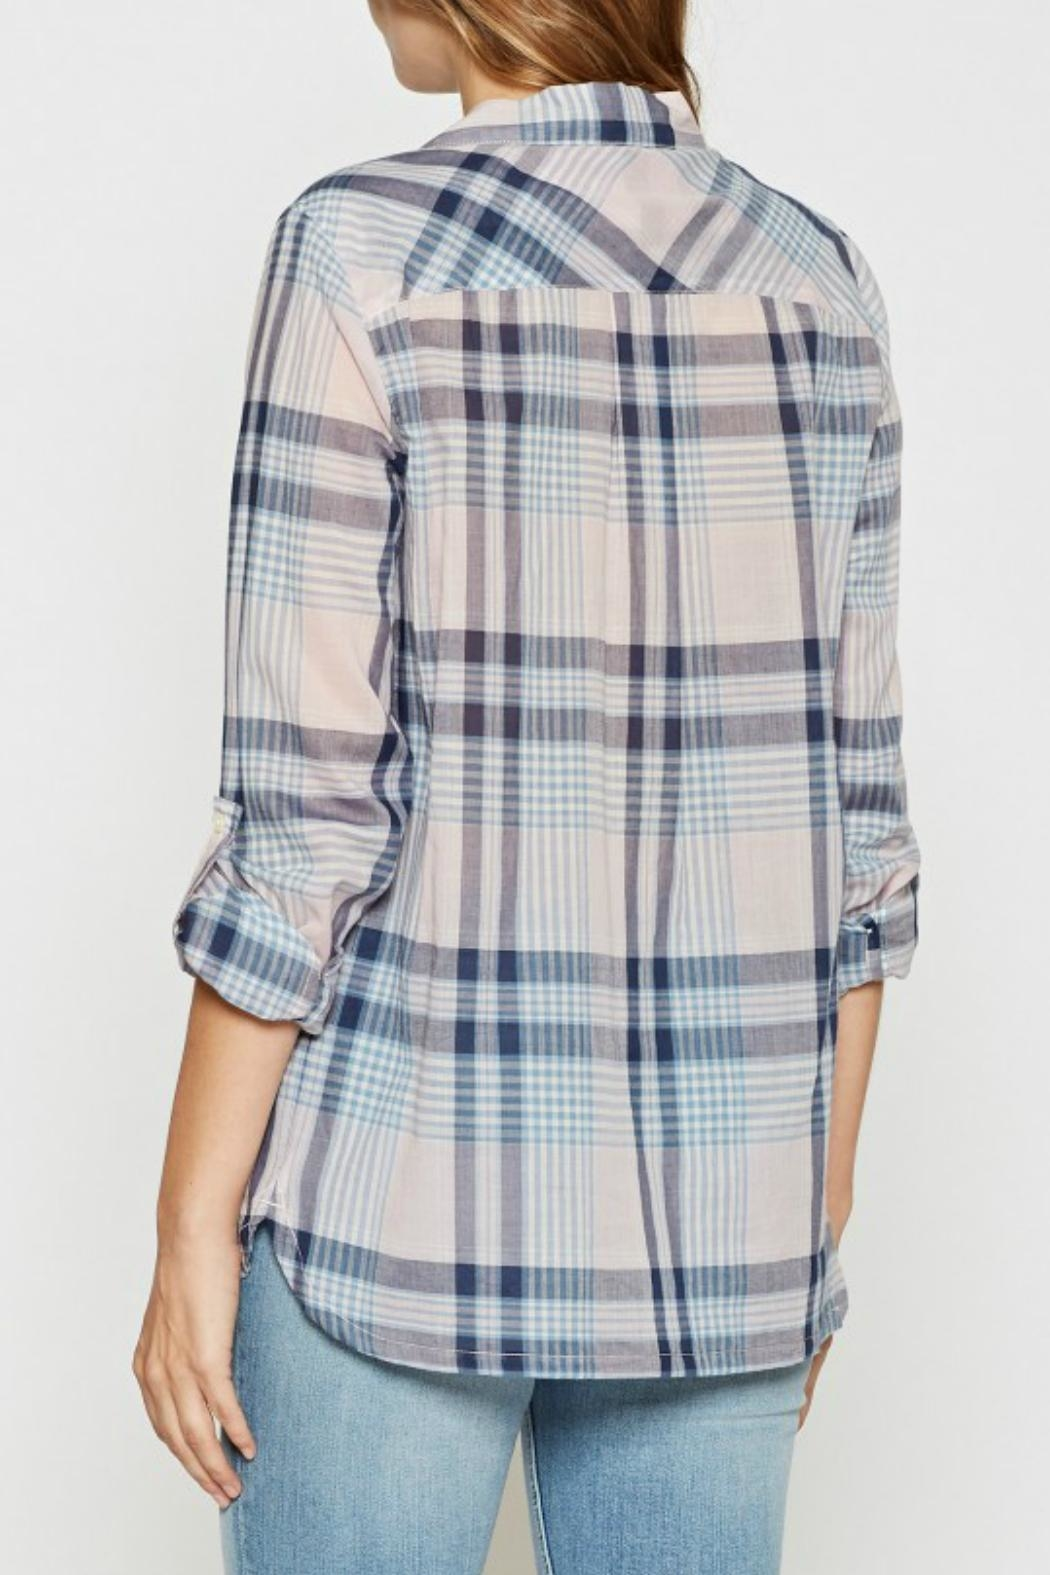 Joie Lilya Plaid Top - Front Full Image